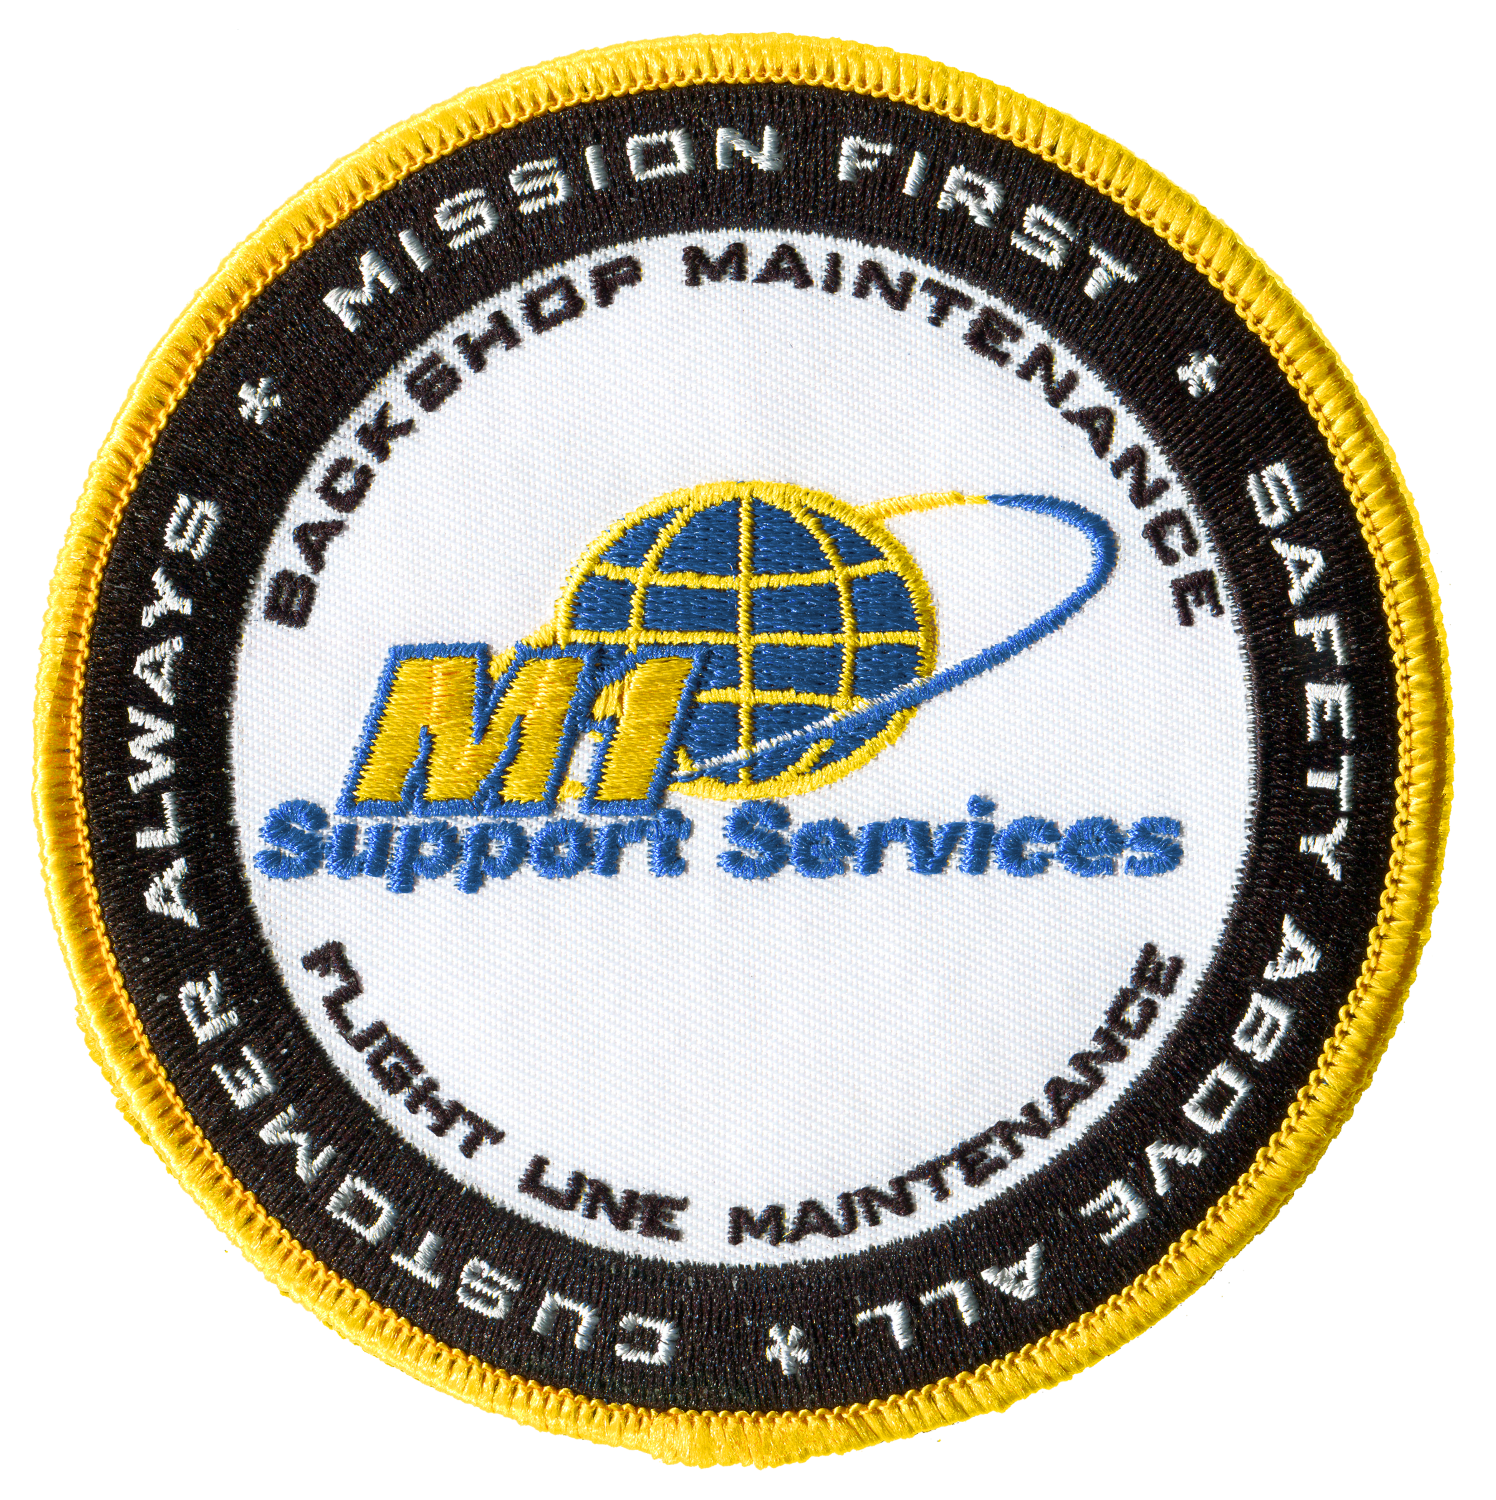 M1 Services Uniforms | Official Website